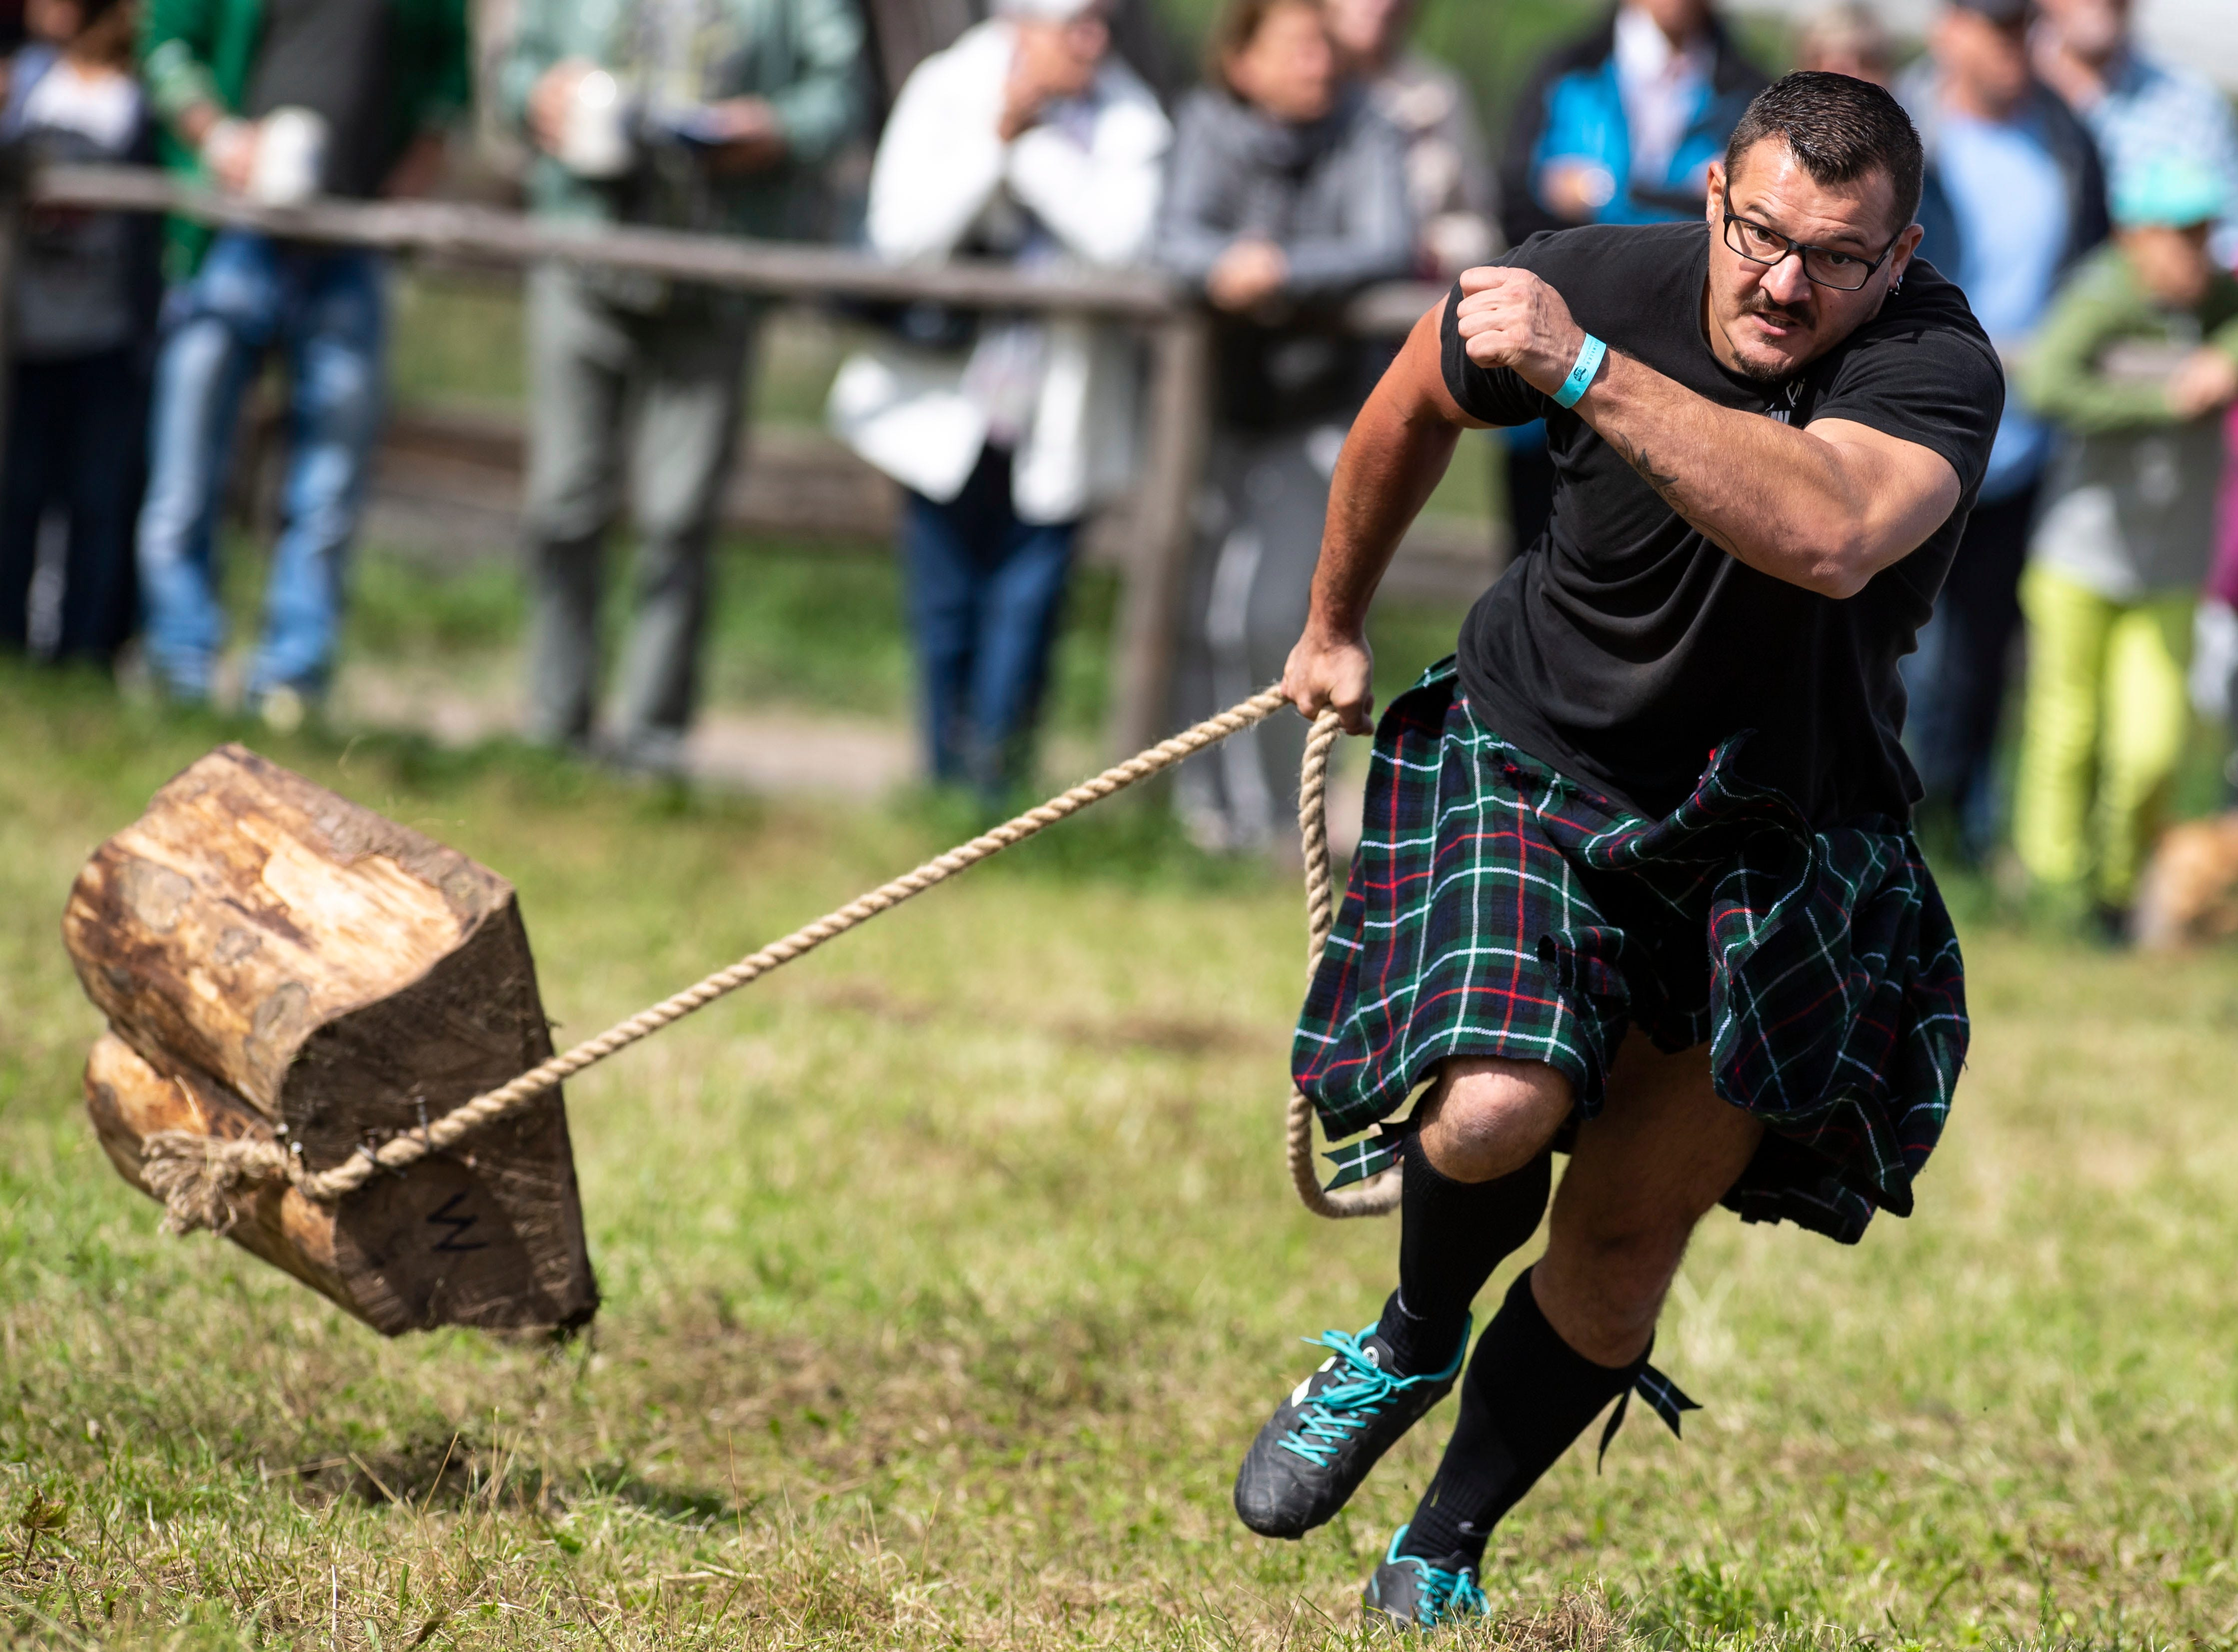 Aug. 26, 2018: A participant of the VII Highland Games Schliersee takes part in the Pull a Log discipline in Schliersee, Bavaria, Germany. Women and men from Germany, Austria and Switzerland met to test their strength in eleven different disciplines.